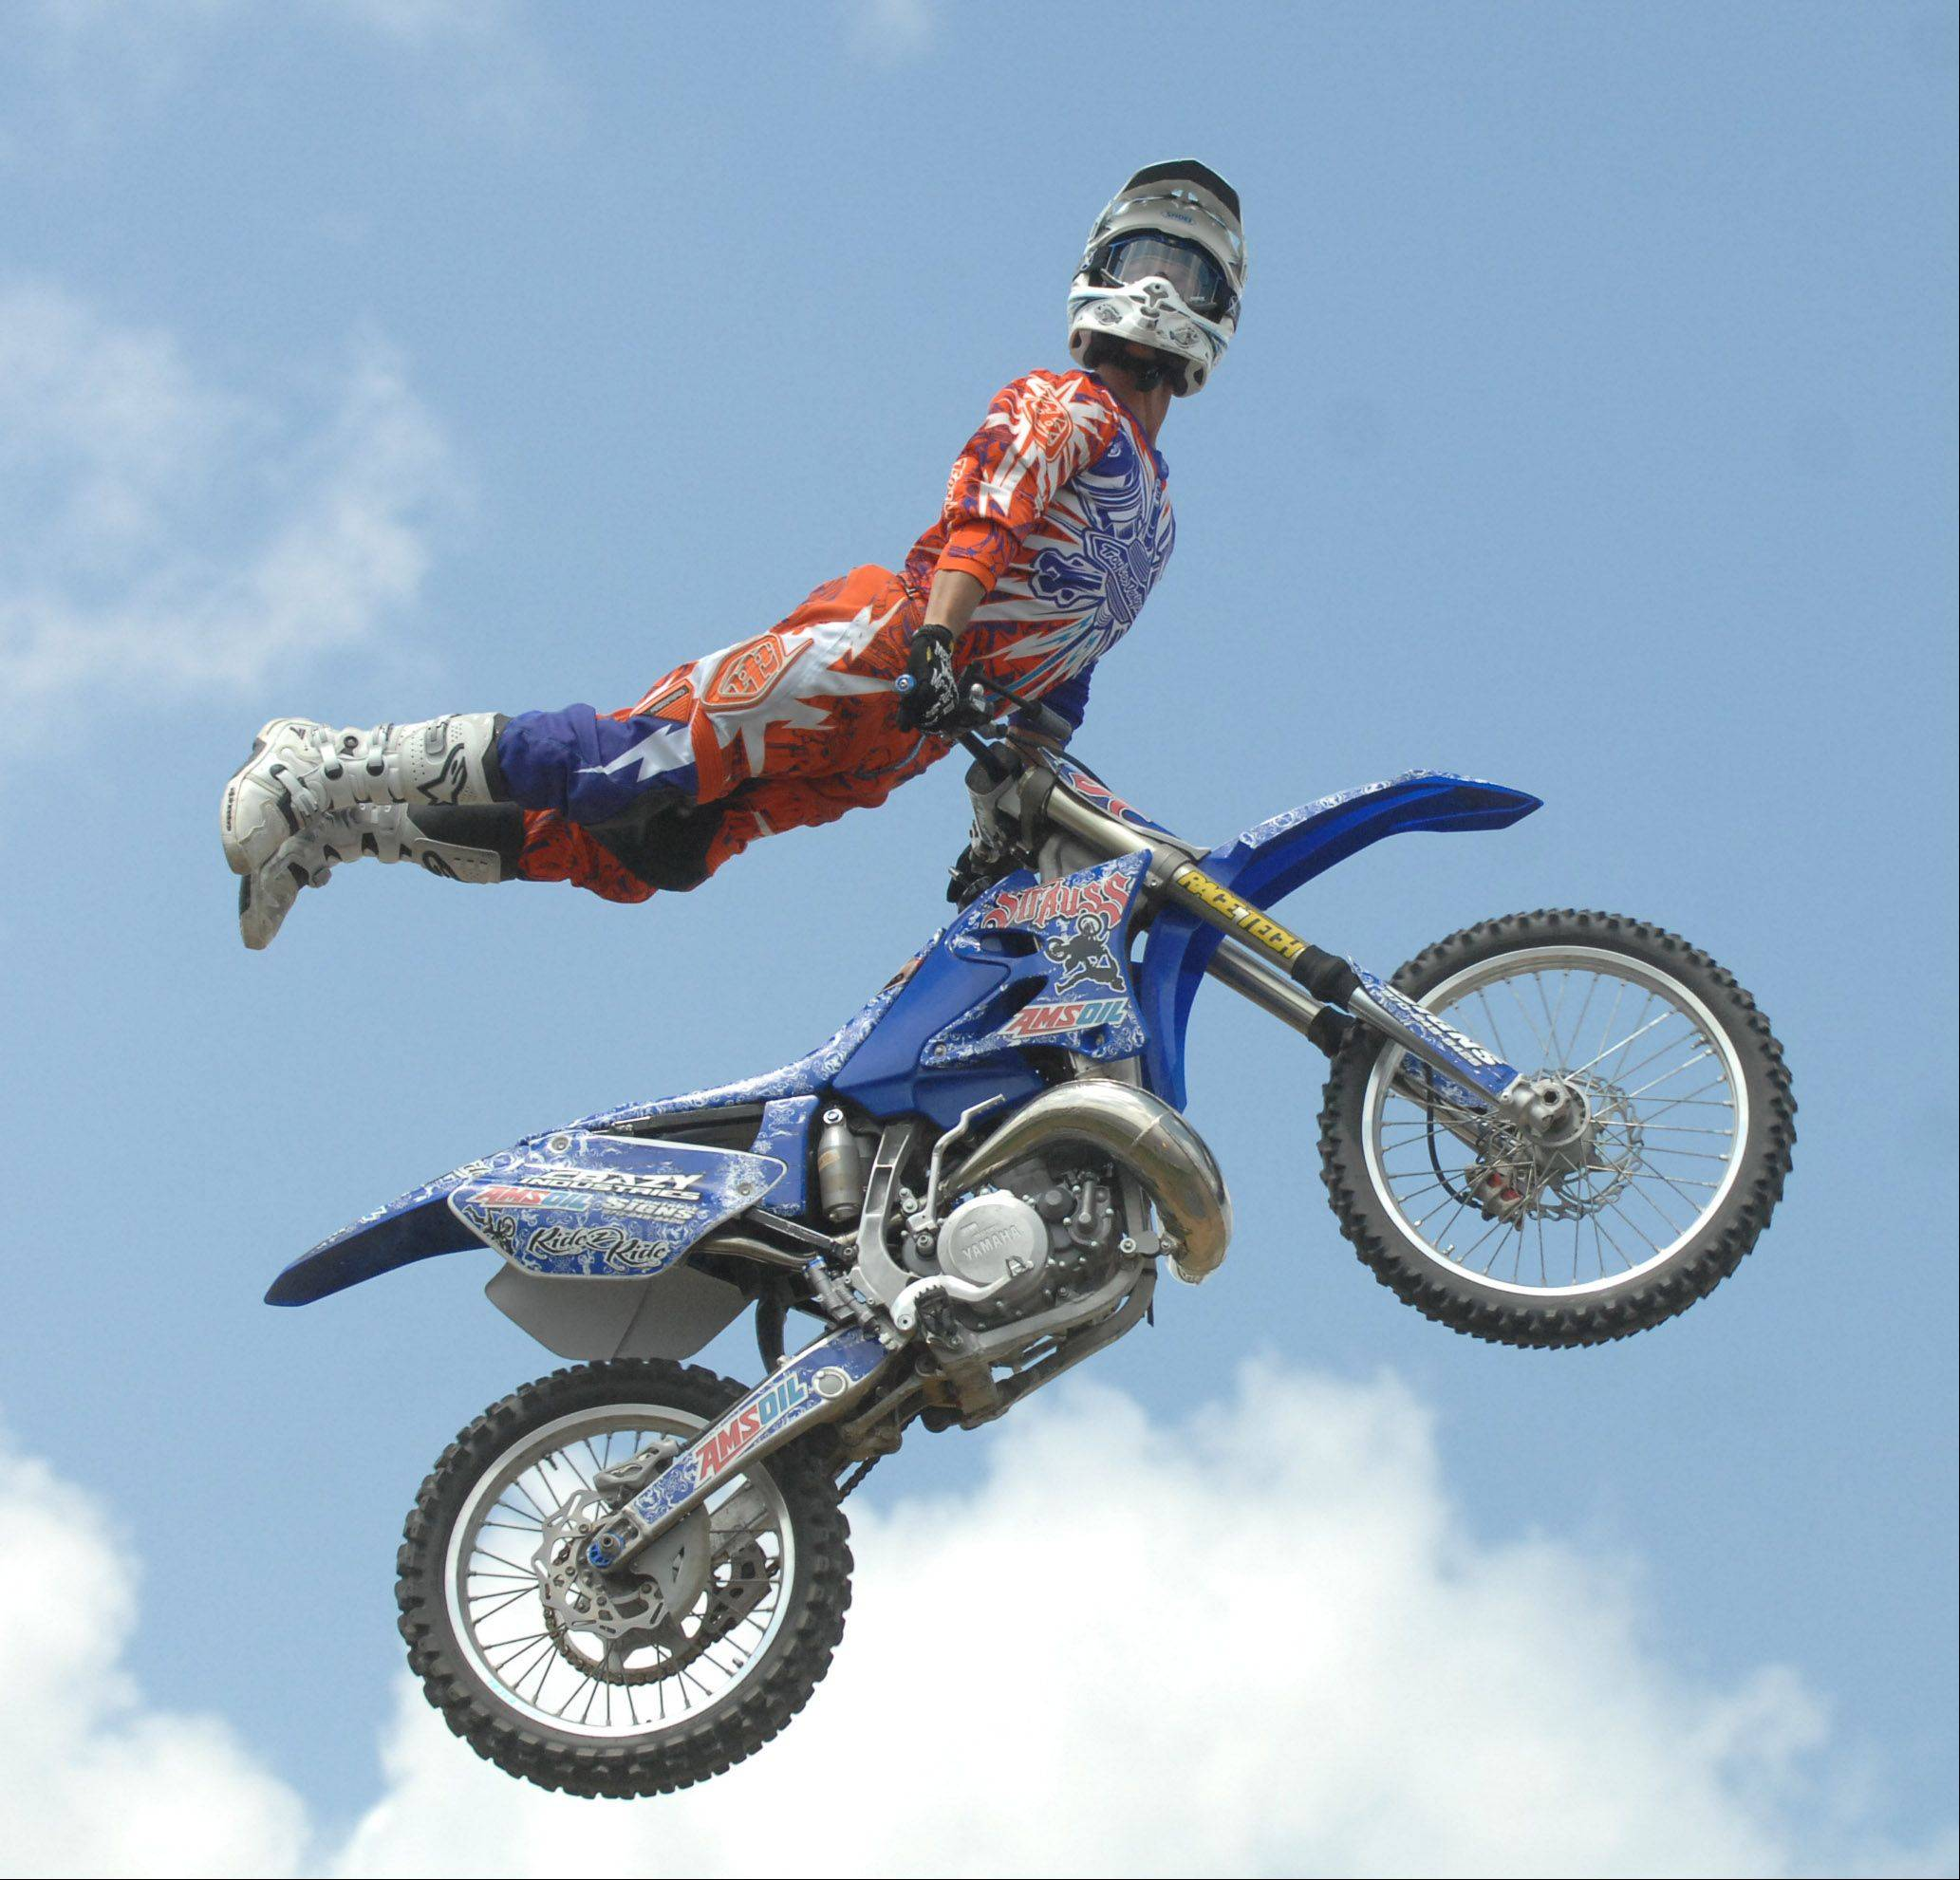 One of five riders in a U.S. FMX Championship Series motocross competition pulls a trick as he glances toward the crowd Saturday at the DuPage County Fair in Wheaton.